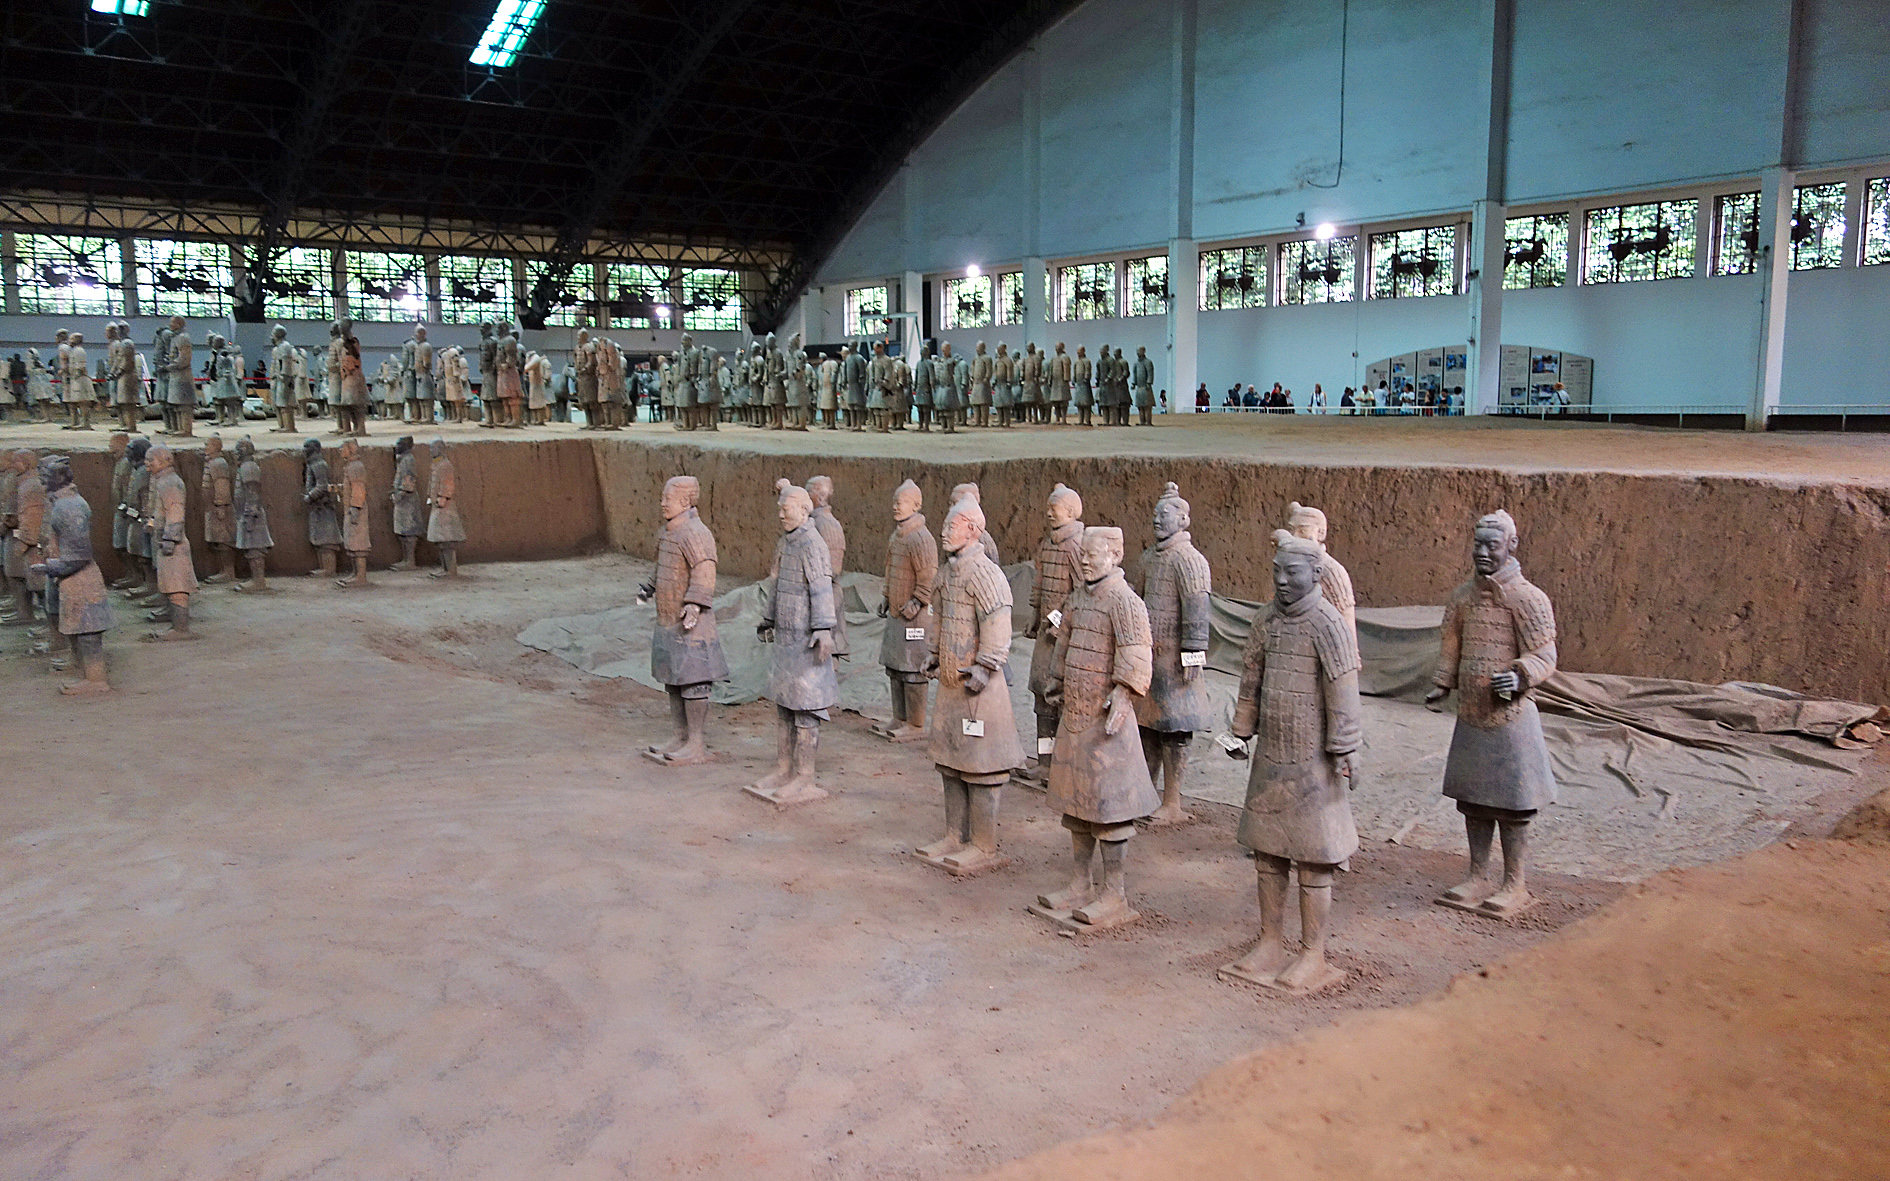 Terracotta army restored statues